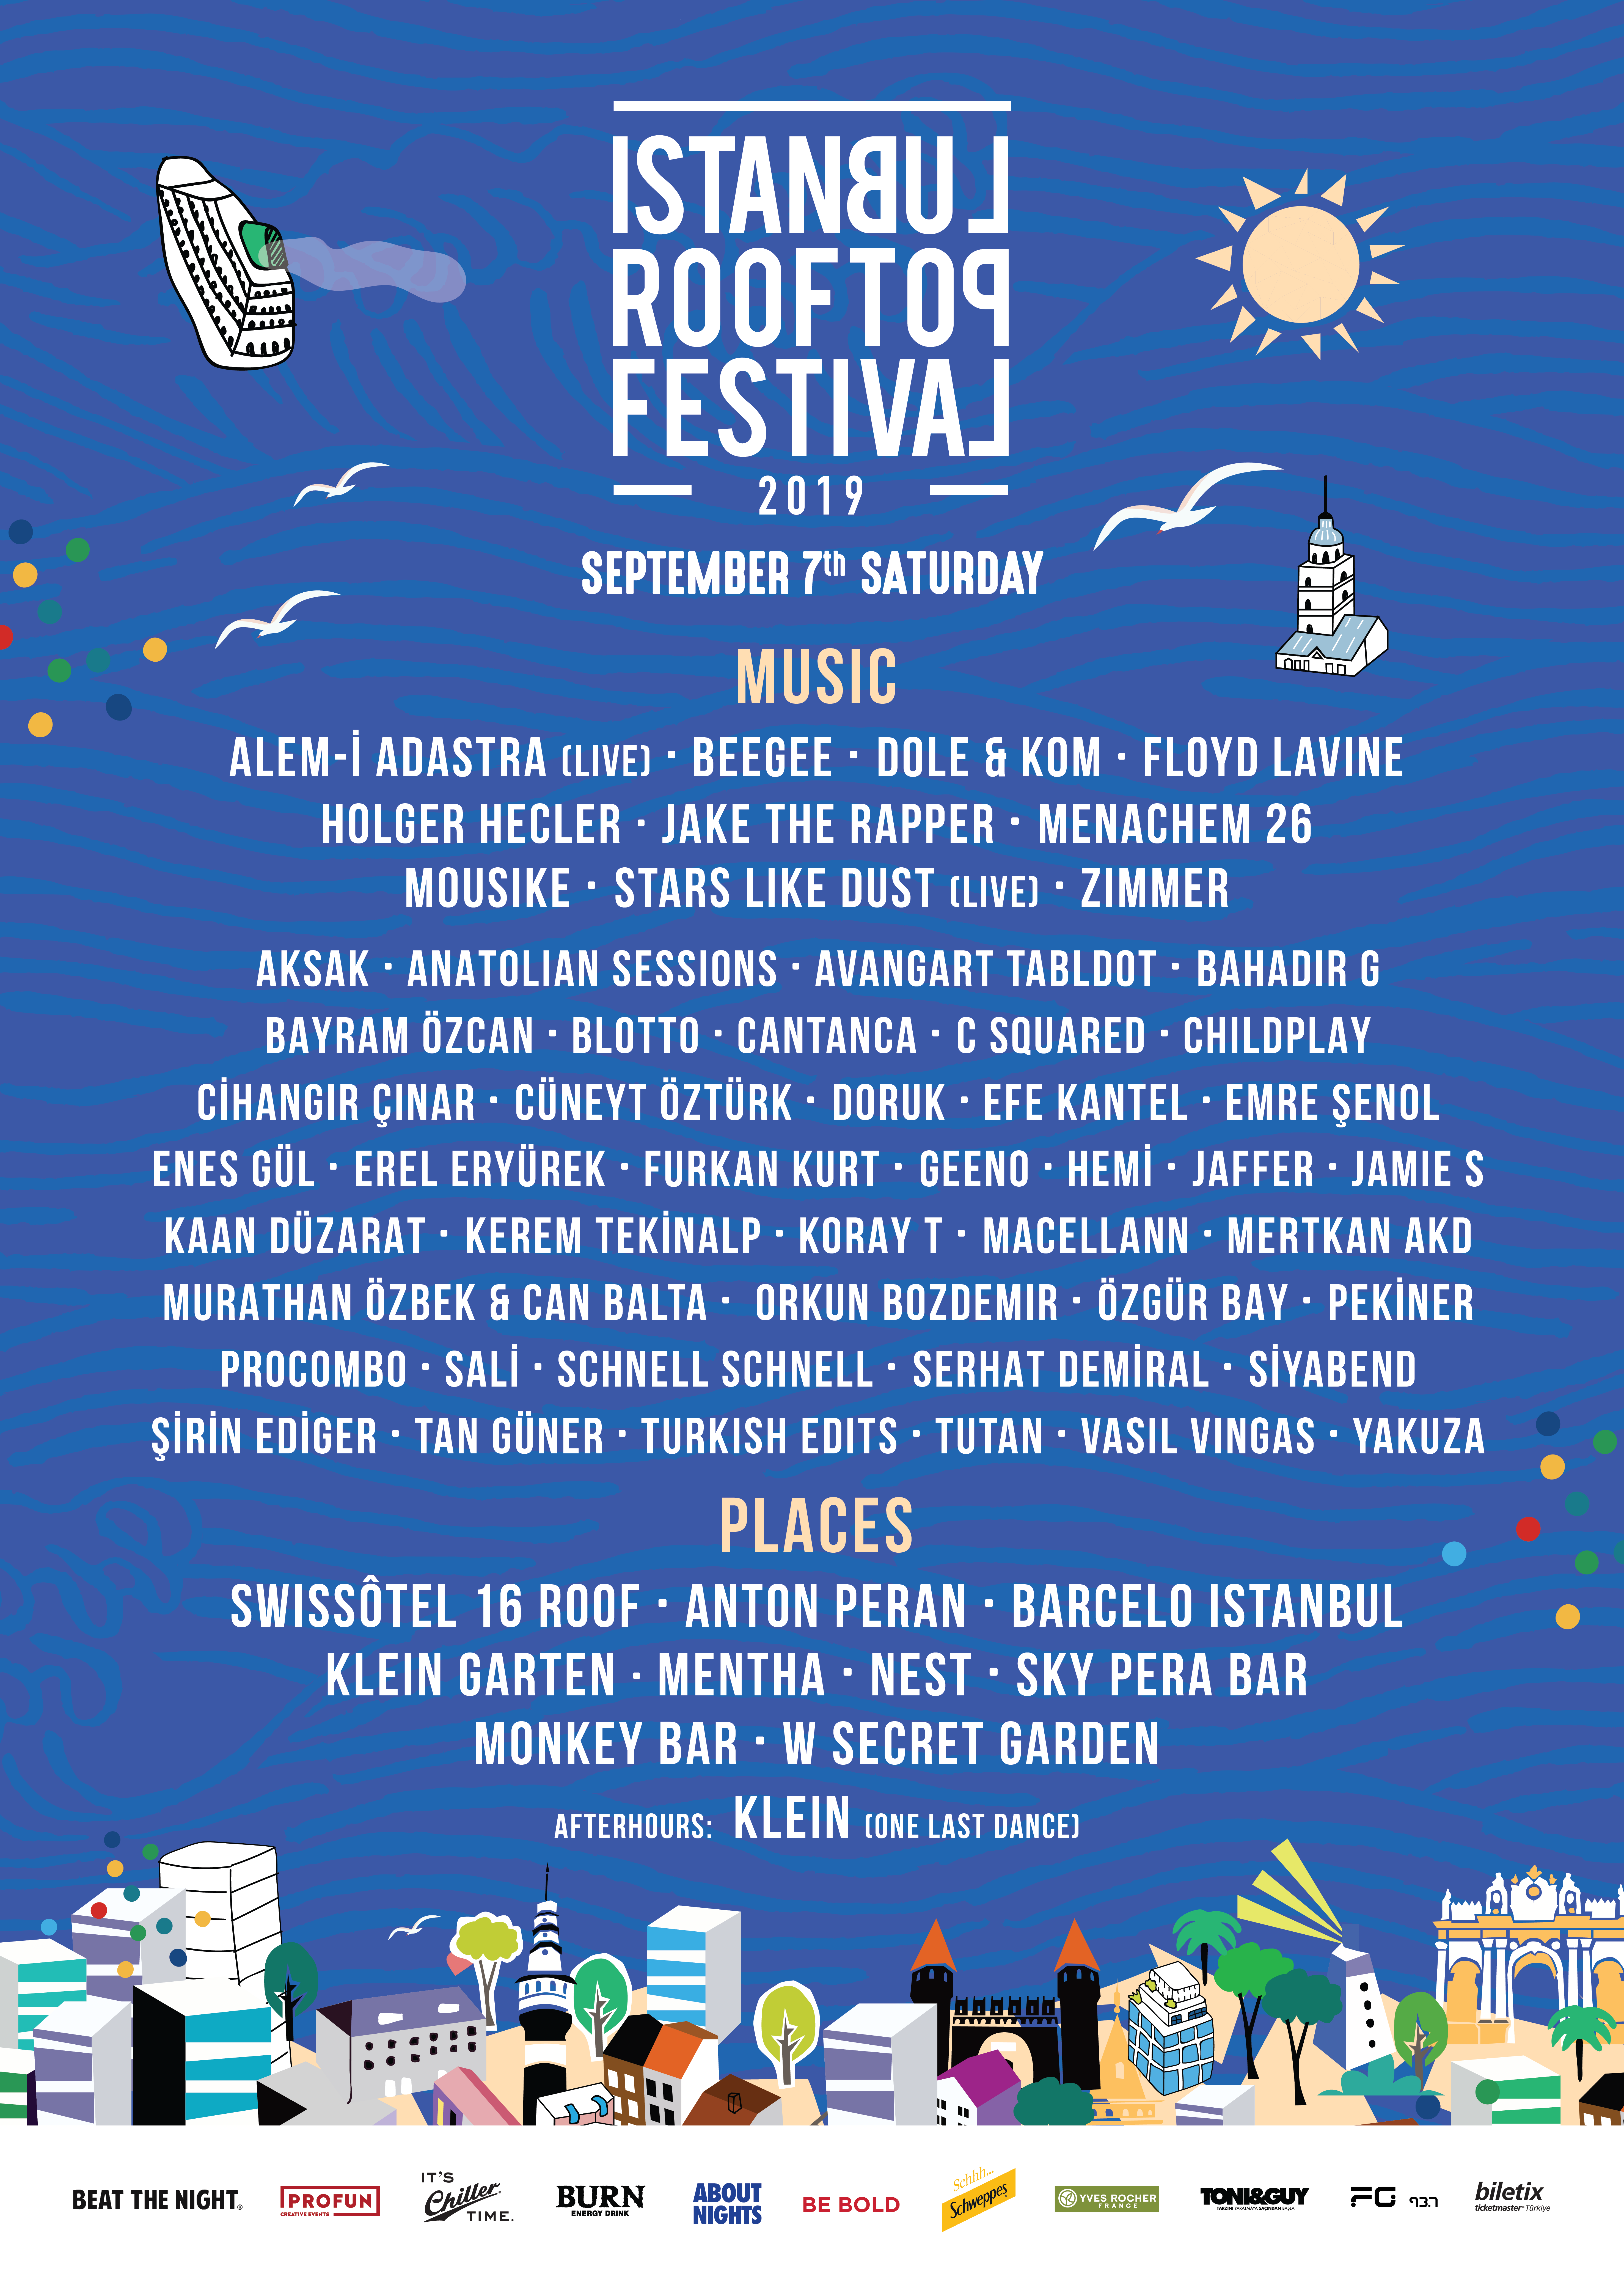 Istanbul Rooftop Festival 2019